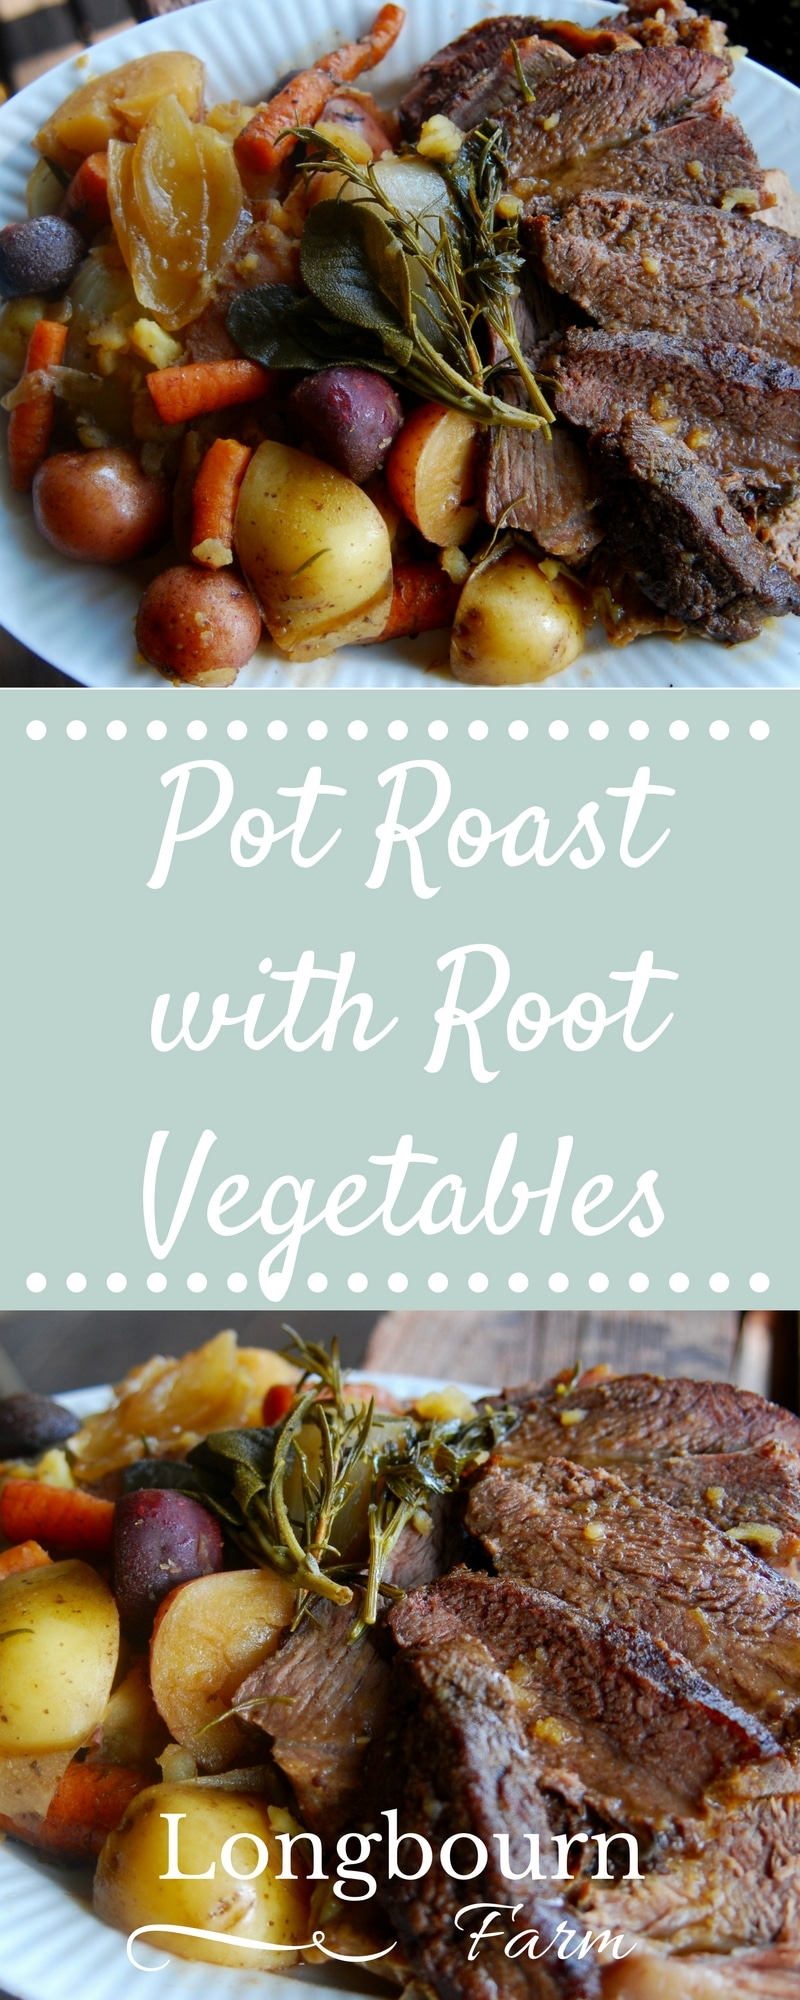 Easy pot roast recipe made with root vegetables is perfect for any occasion. Delicious and filling, the hardest part is waiting for it to cook!